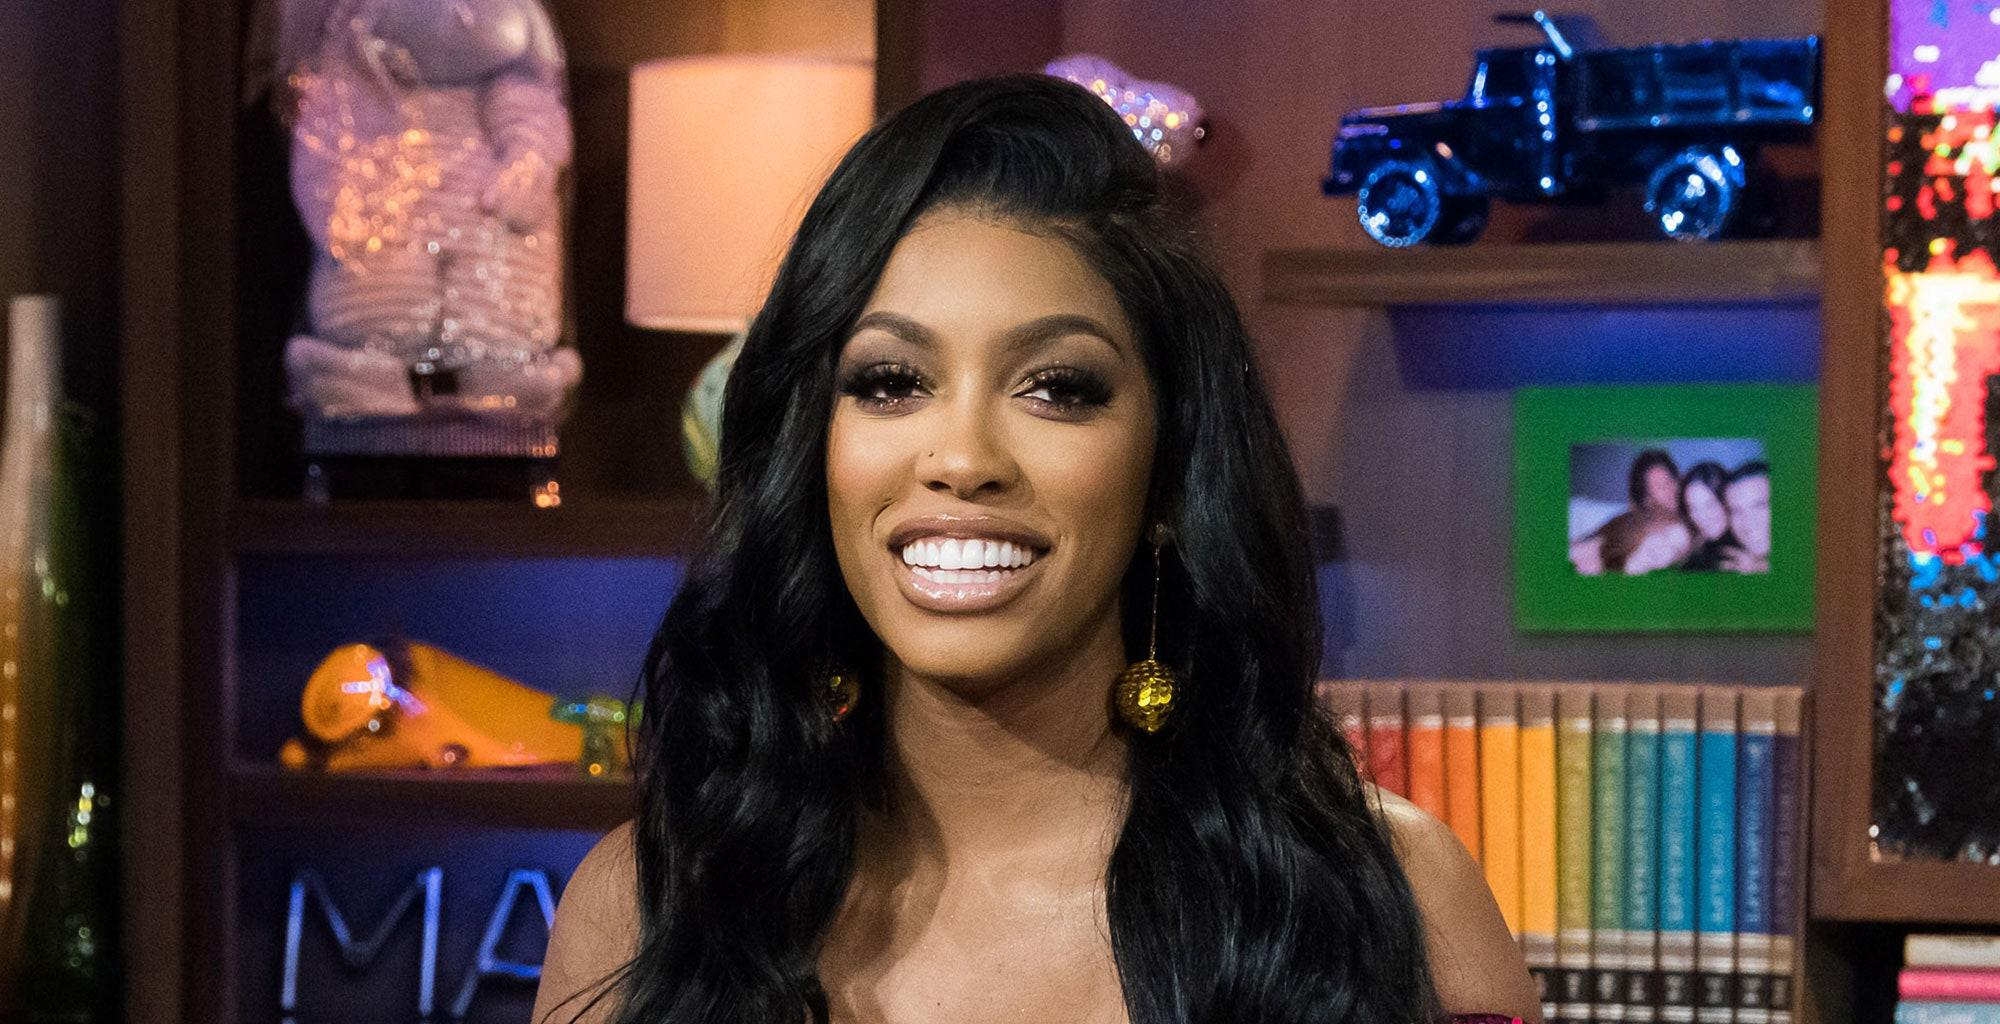 Porsha Williams Gushes Over The Women In Her Life - See Her Post